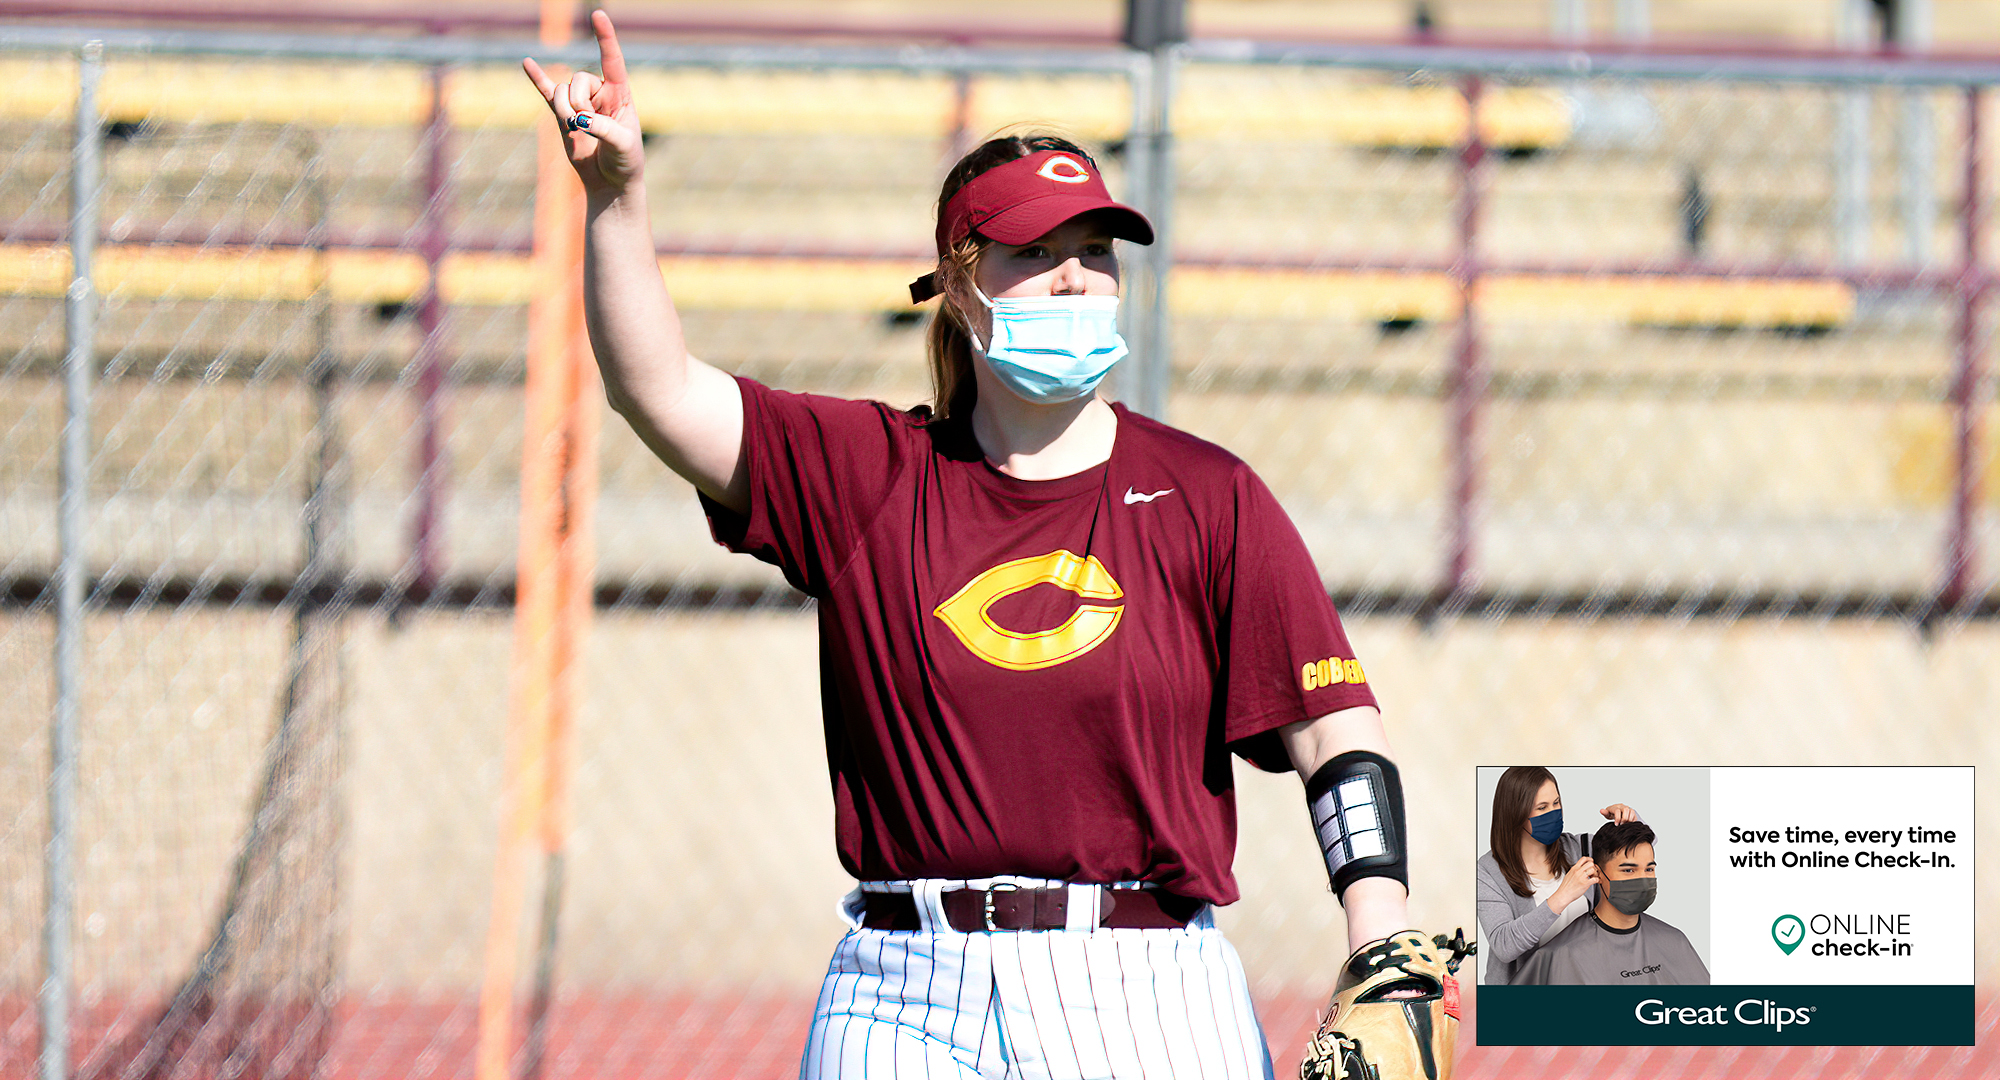 Senior Taylor Erholtz had a double in each of the Cobbers' two games with Wis.-Superior. She was the only CC player with a hit in each of the 5-1 decisions.